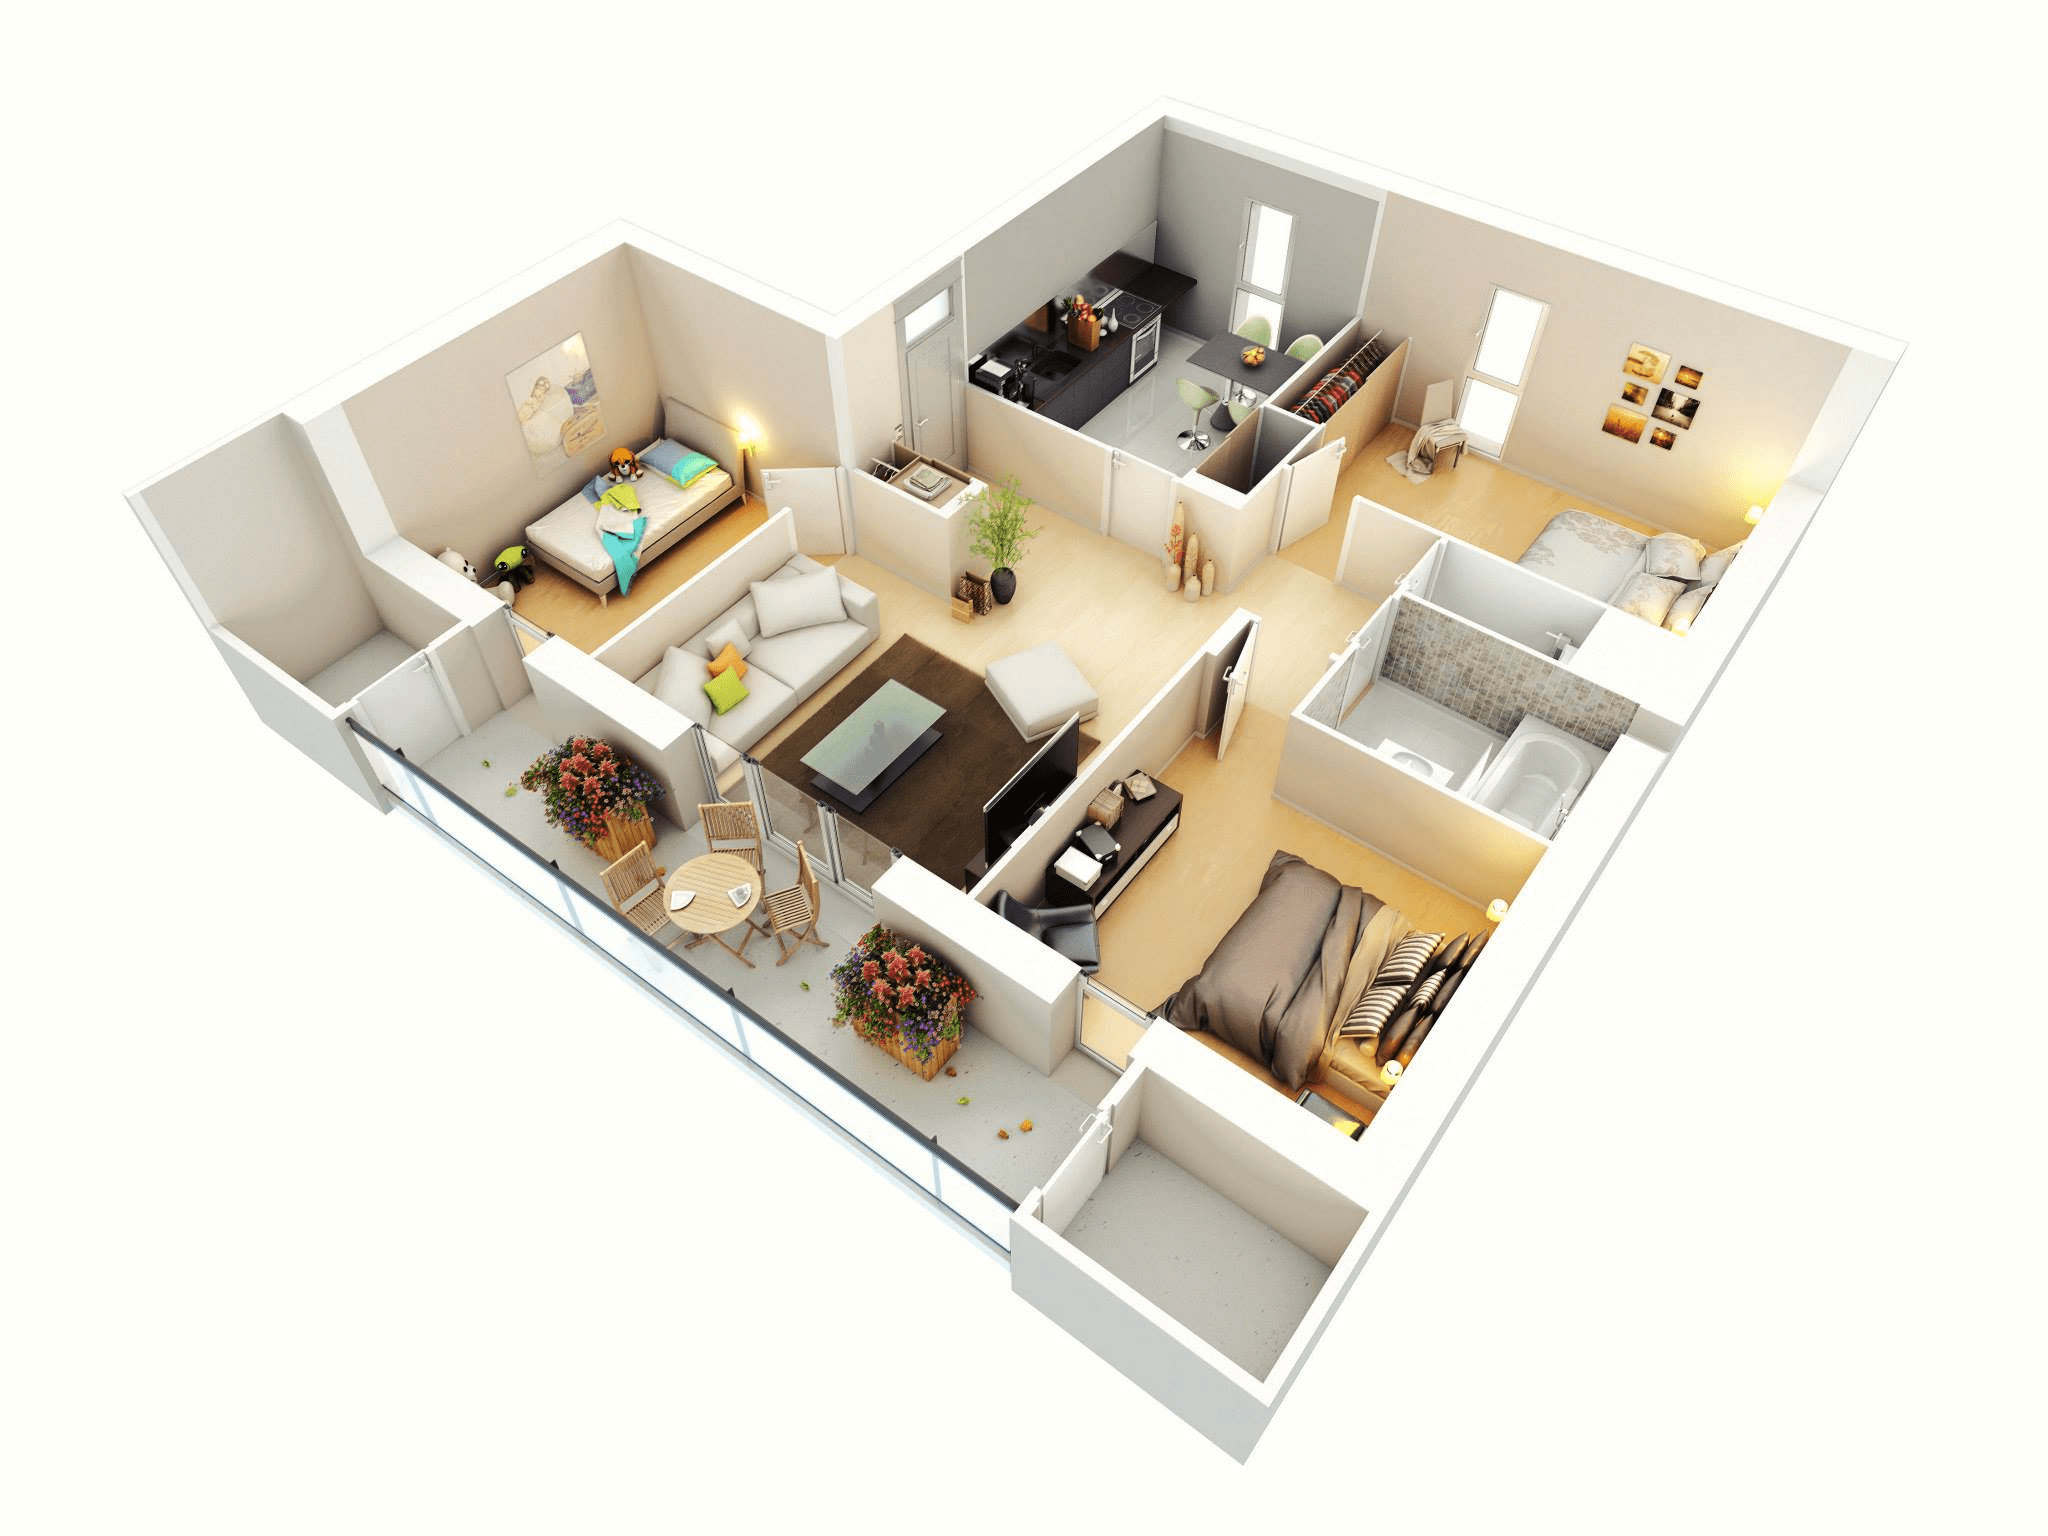 3d three bedroom house layout design plans 23034 for One floor house design plans 3d